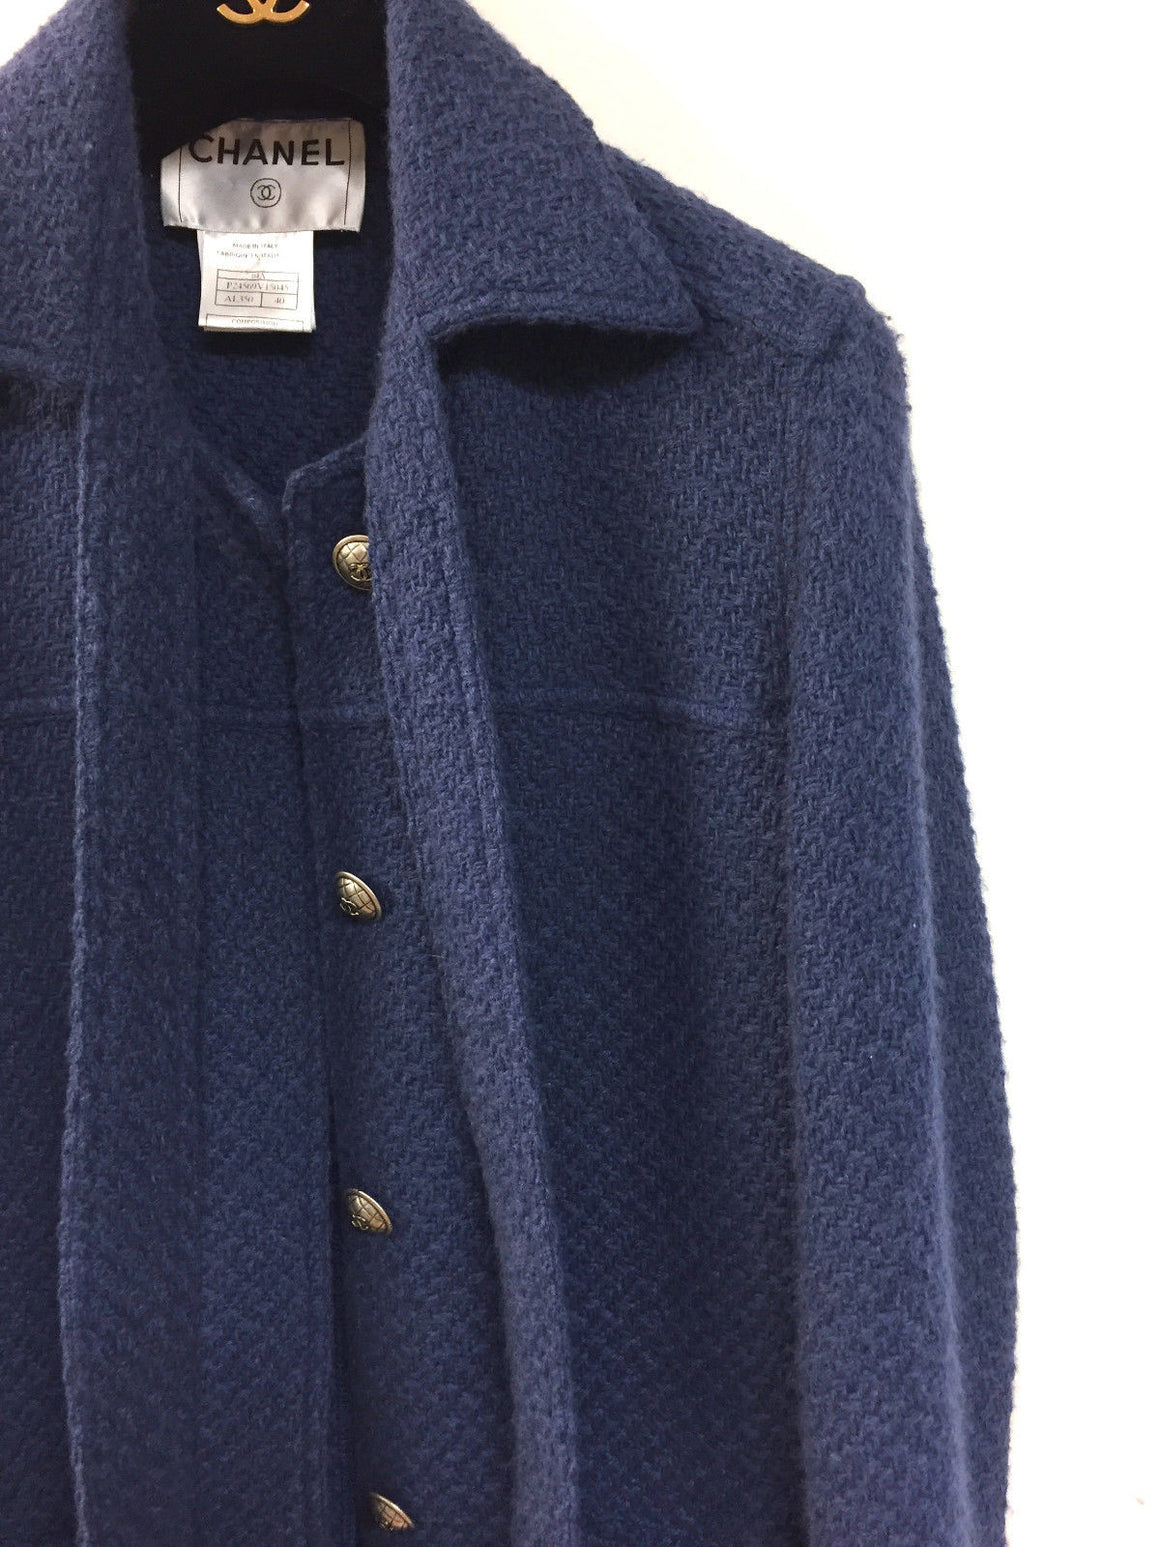 bisbiz.com CHANEL Fall 2004 Collection Slate-Blue Wool/Angora Blend Knit Sweater Coat Size: FR 40/US6 - Bis Luxury Resale